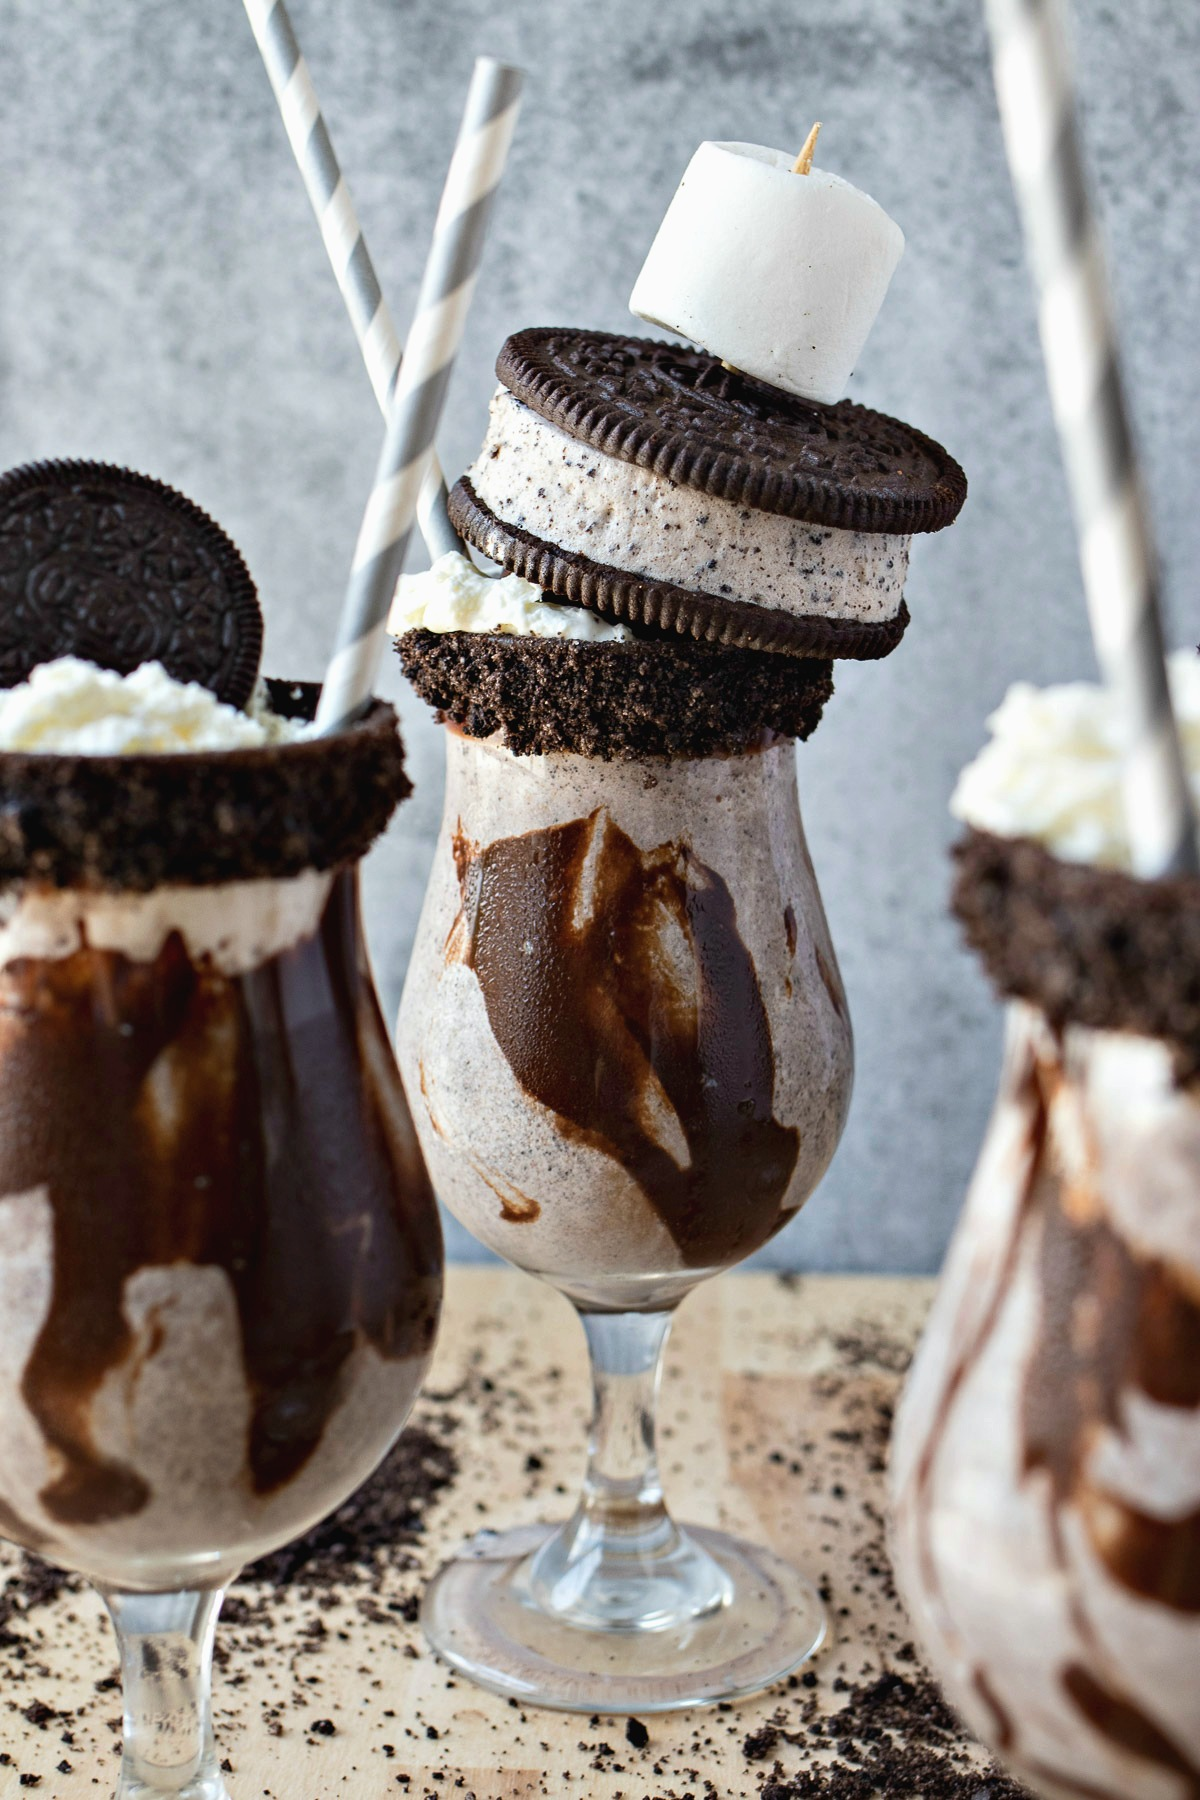 The Ultimate Cookies & Cream Milkshake with a cookie and marshmallow spear